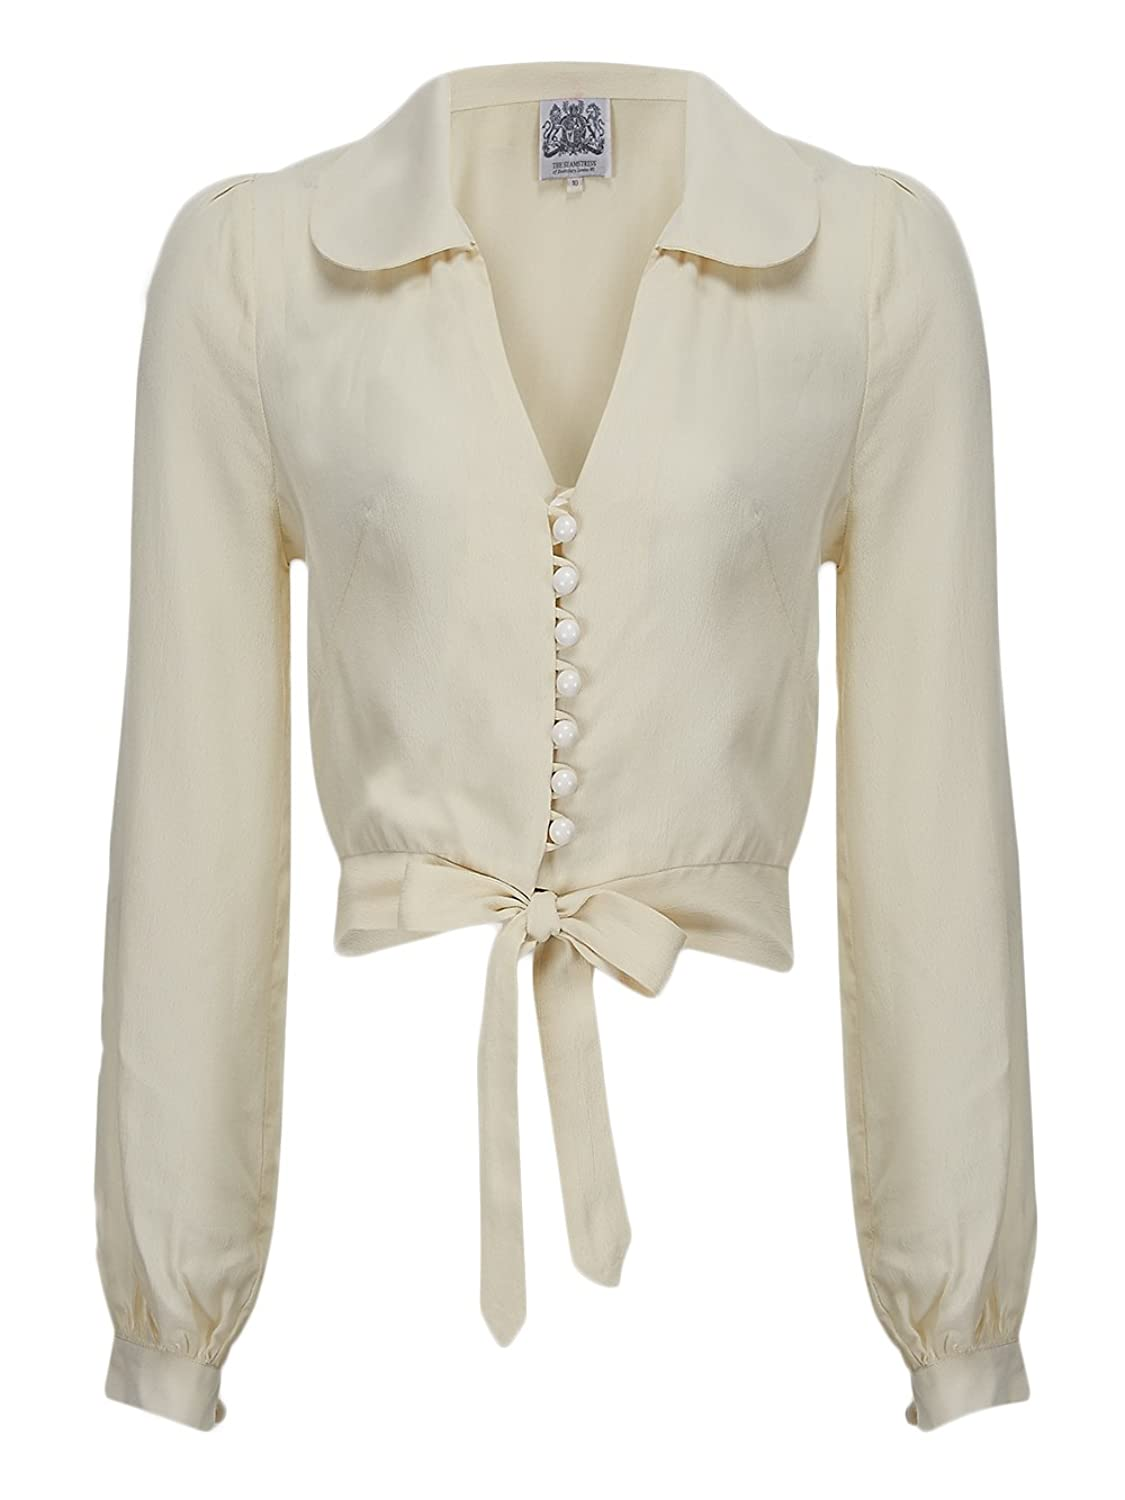 1940s Blouses and Tops 1940s/50s Authentic Vintage Inspired Button Up Tie Down Blouse in Cream £39.00 AT vintagedancer.com